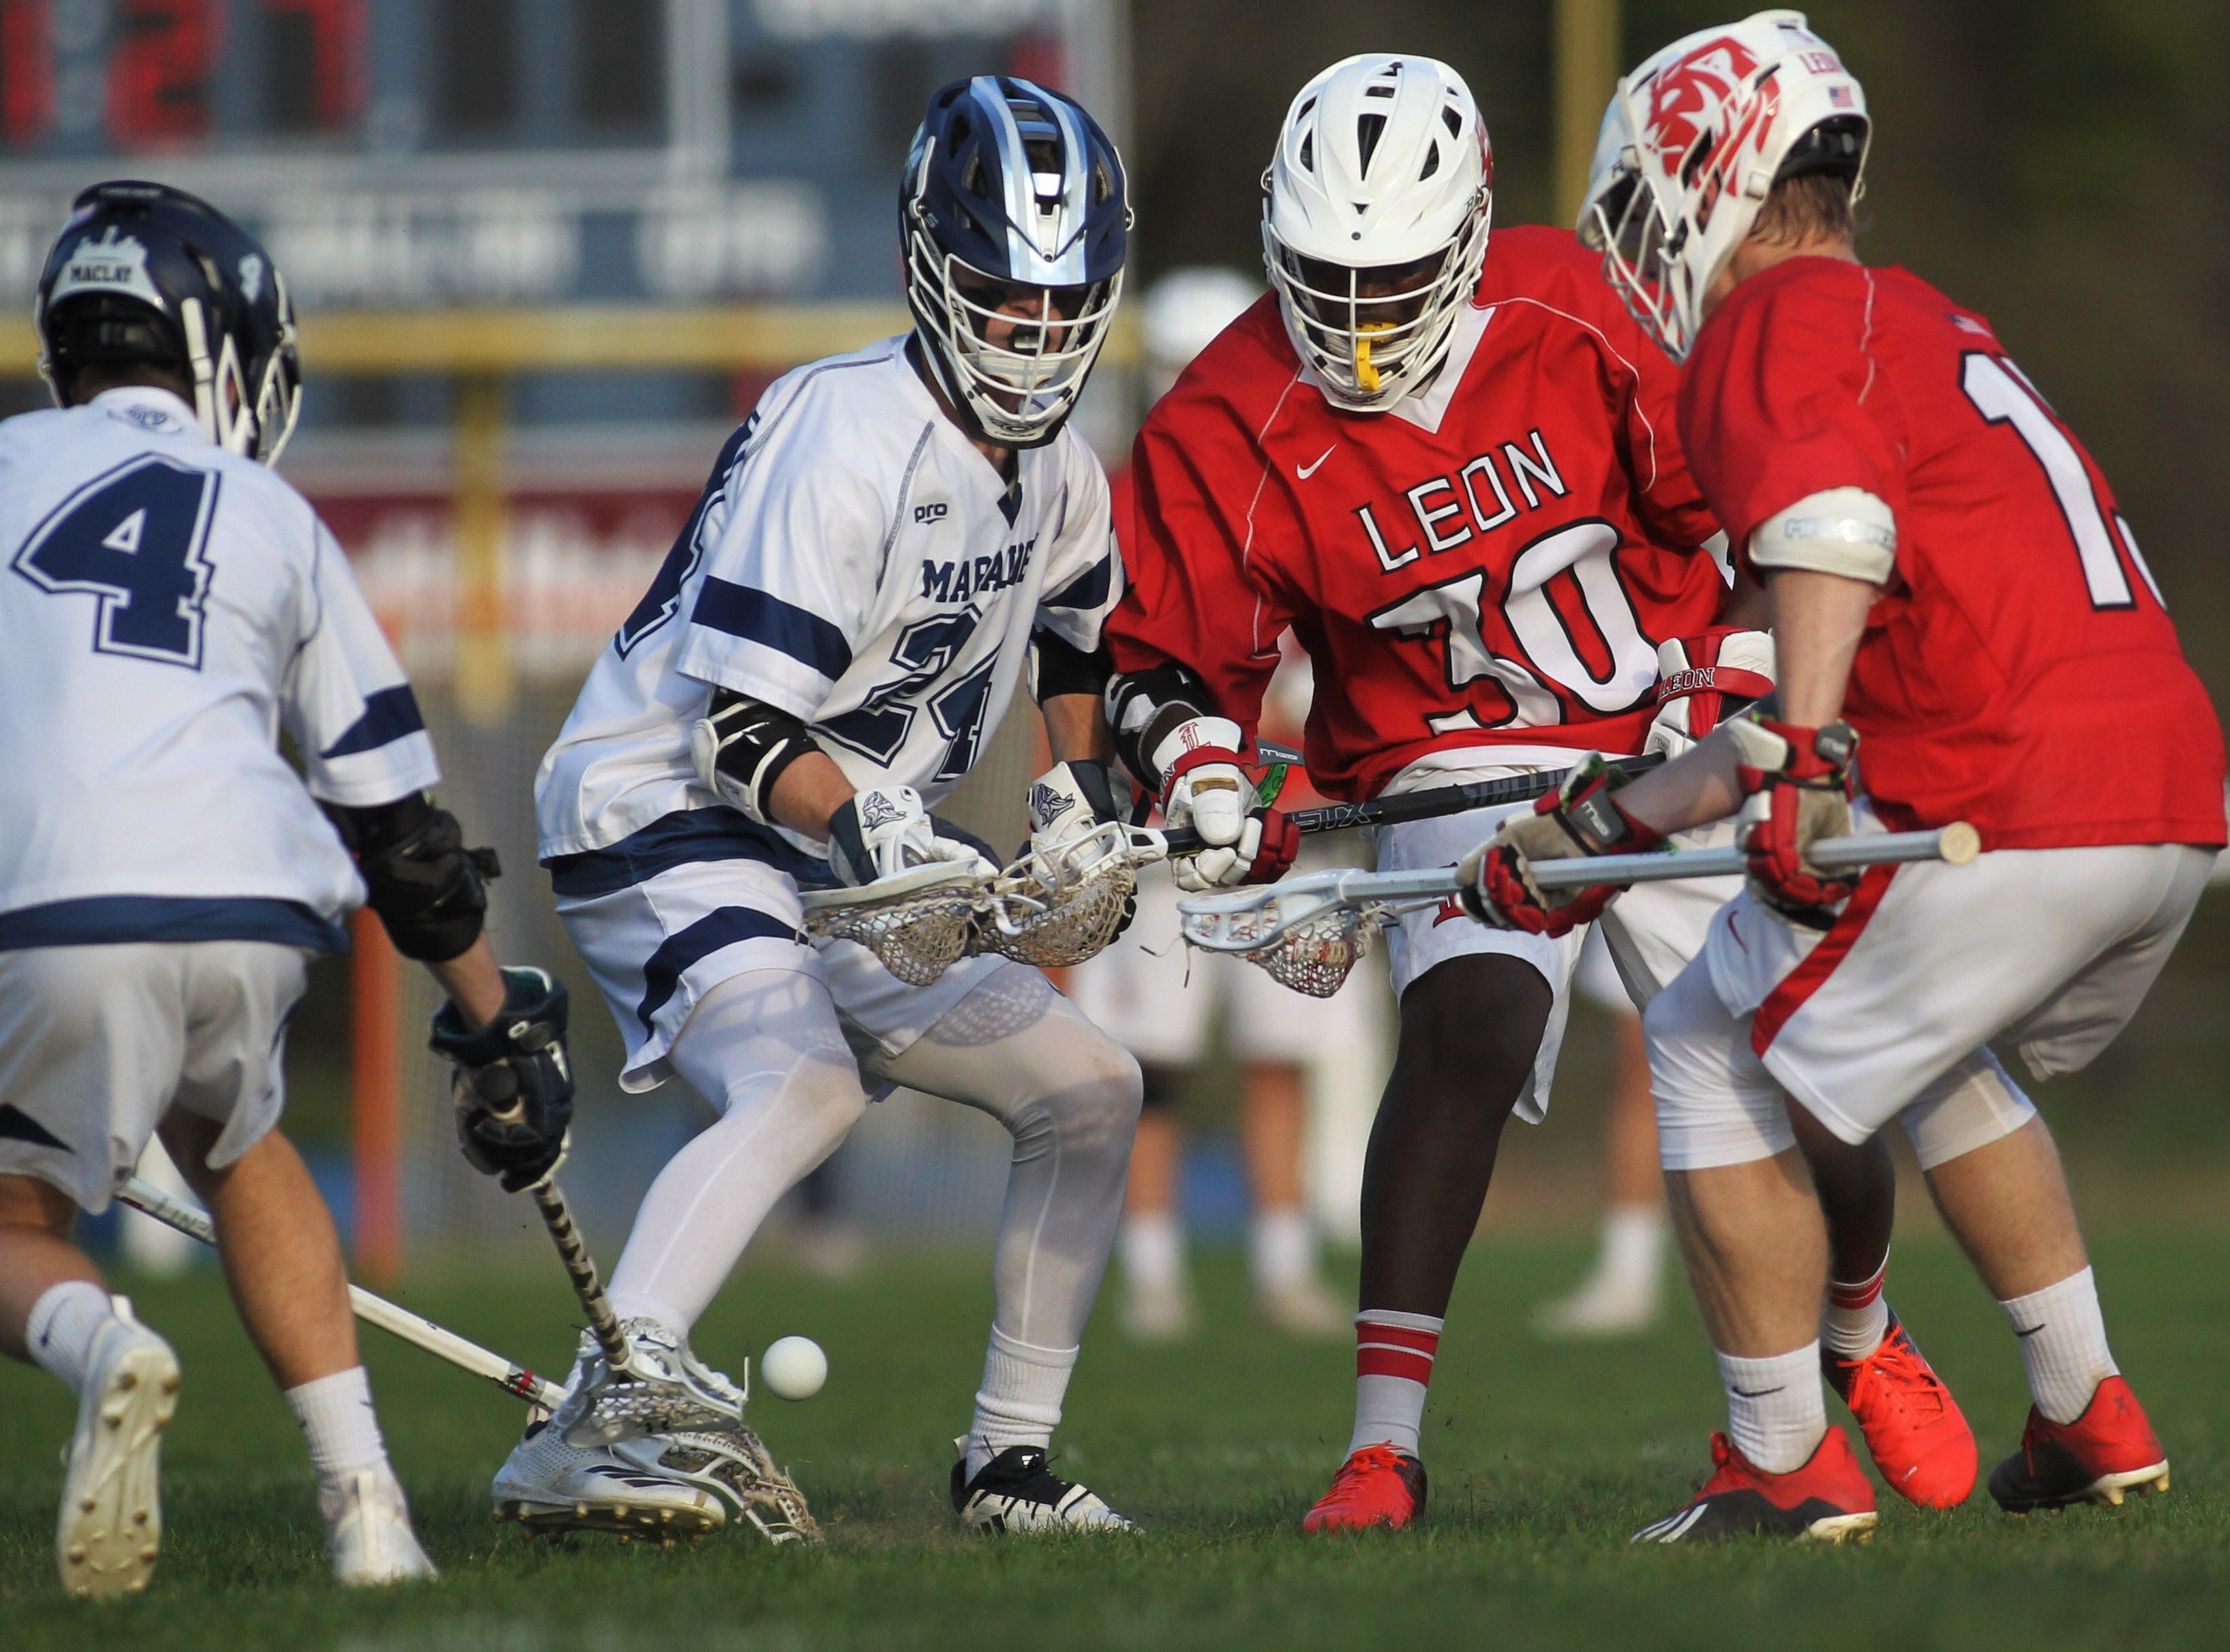 Maclay's Stone Foster (4) and Liam McAbee (24) fight for possession of a loose ball against Leon's Maurico Hyde (30) and Casey Palmer (13) as the Marauders' lacrosse team beat Leon 15-5 on their annual Military Appreciation Night on March 12, 2019.